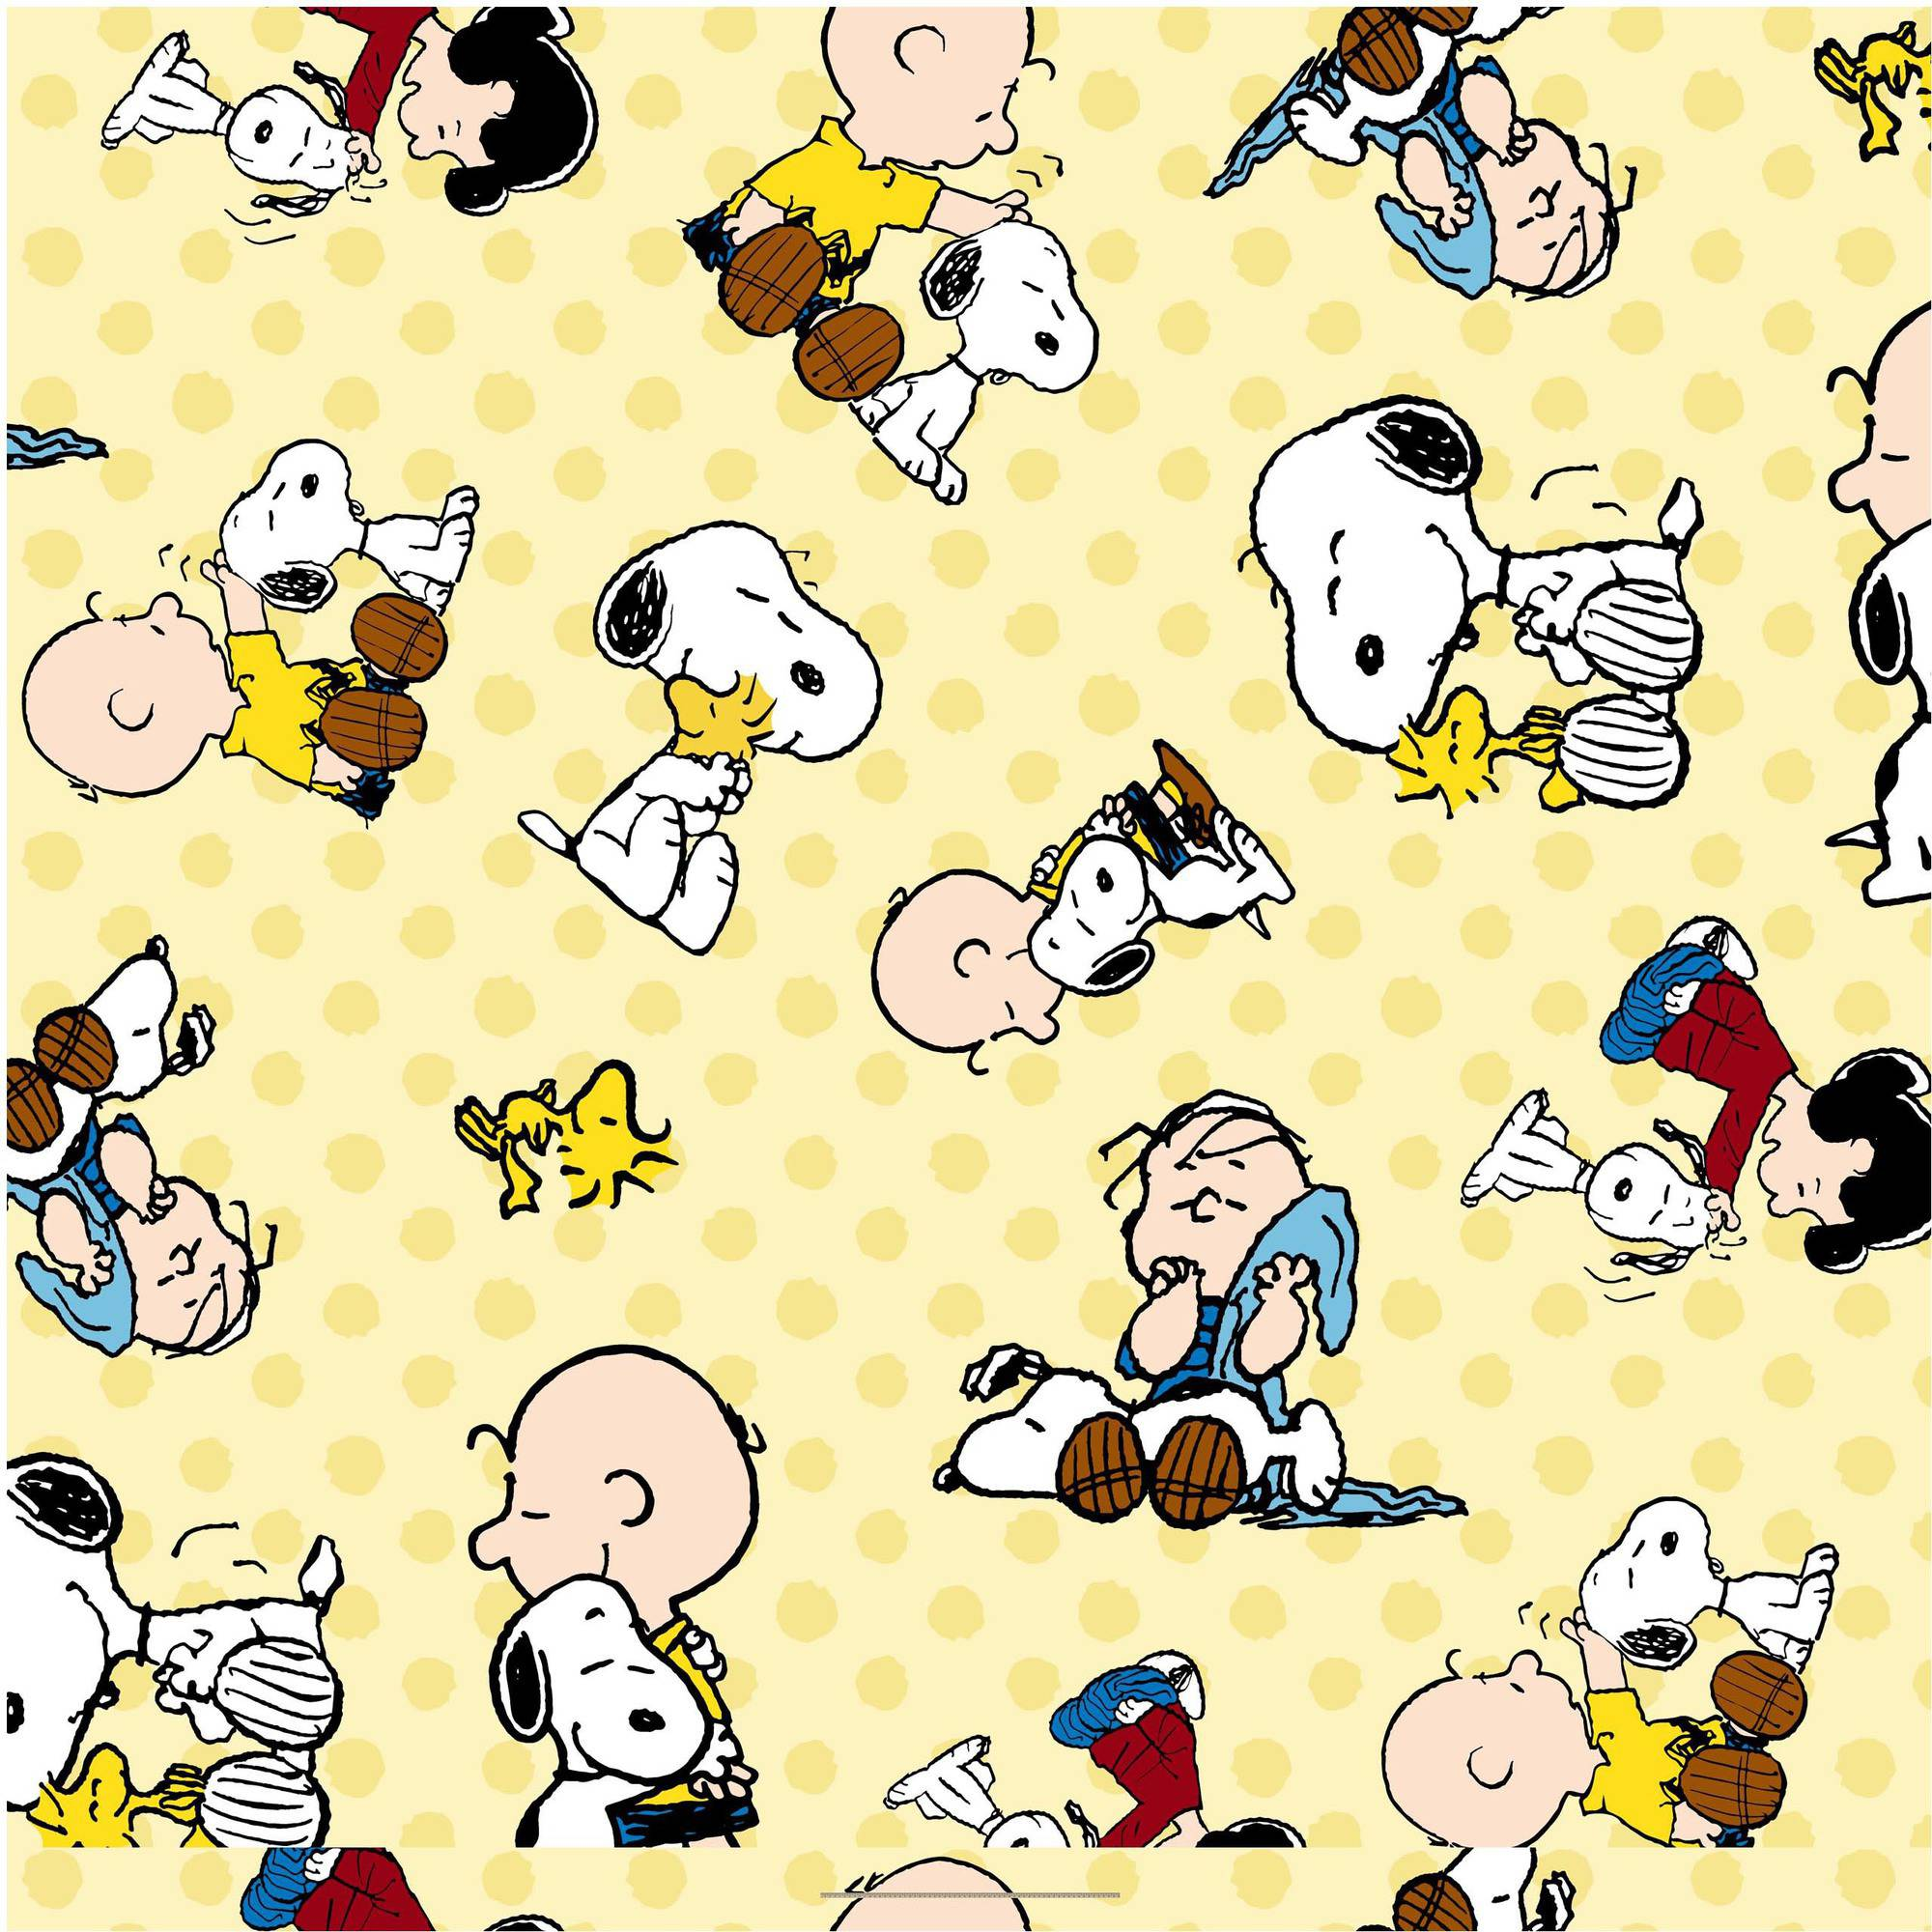 Peanuts Fall Wallpaper Snoopy And Friends Www Pixshark Com Images Galleries